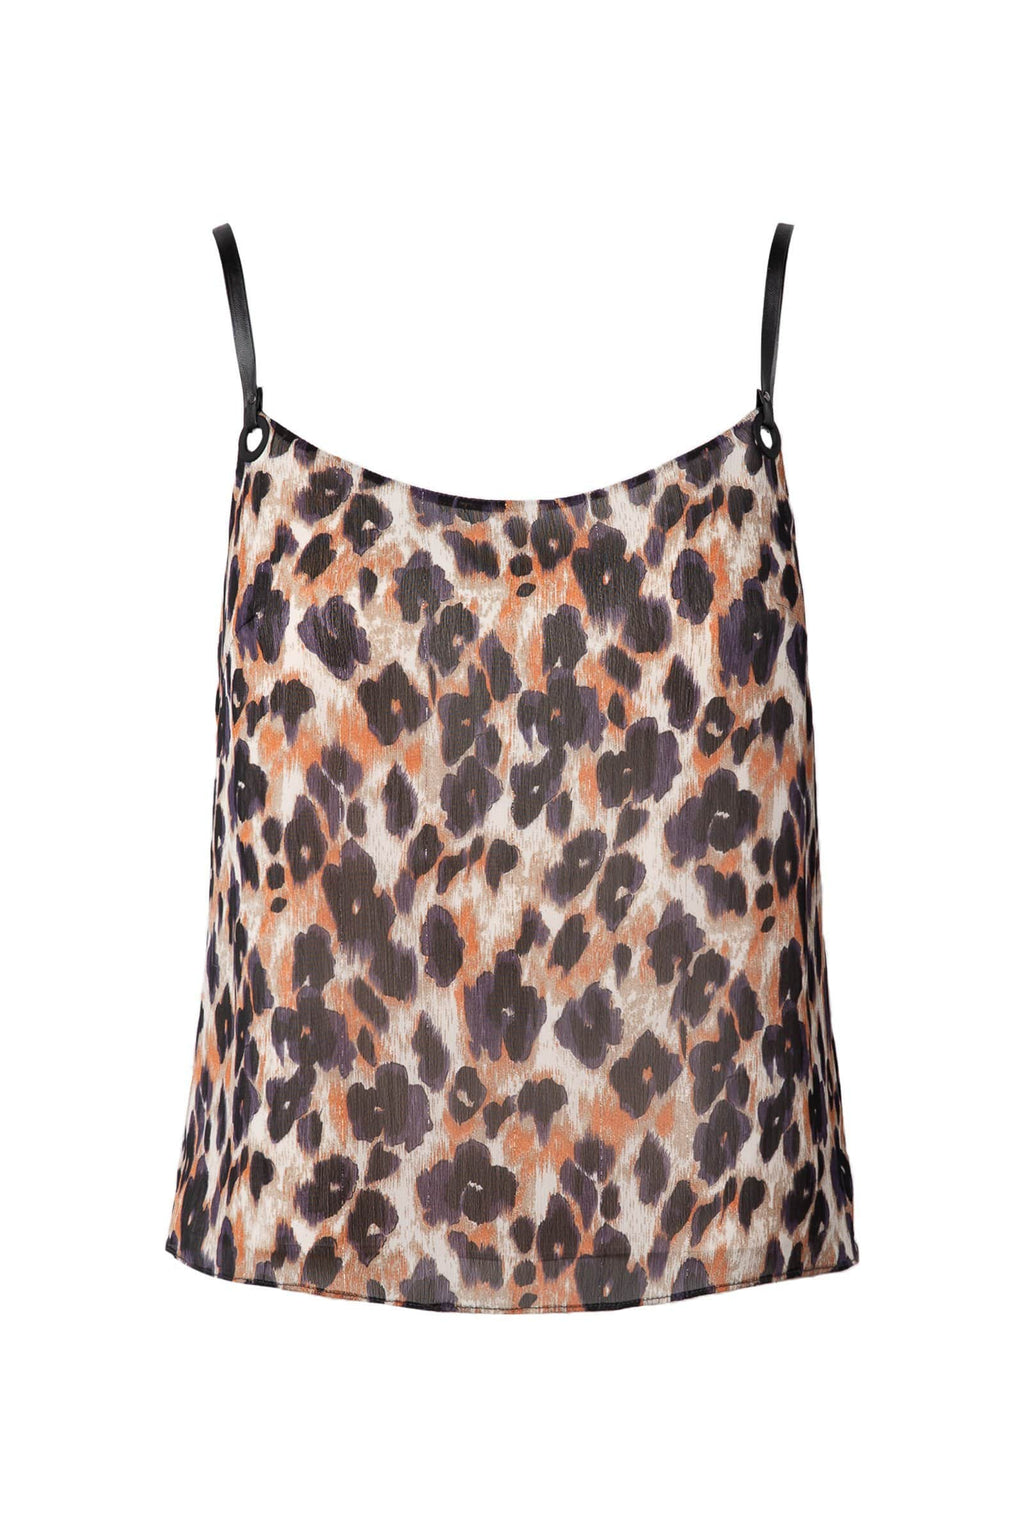 photo of leopard print spaghetti strap top in brown color